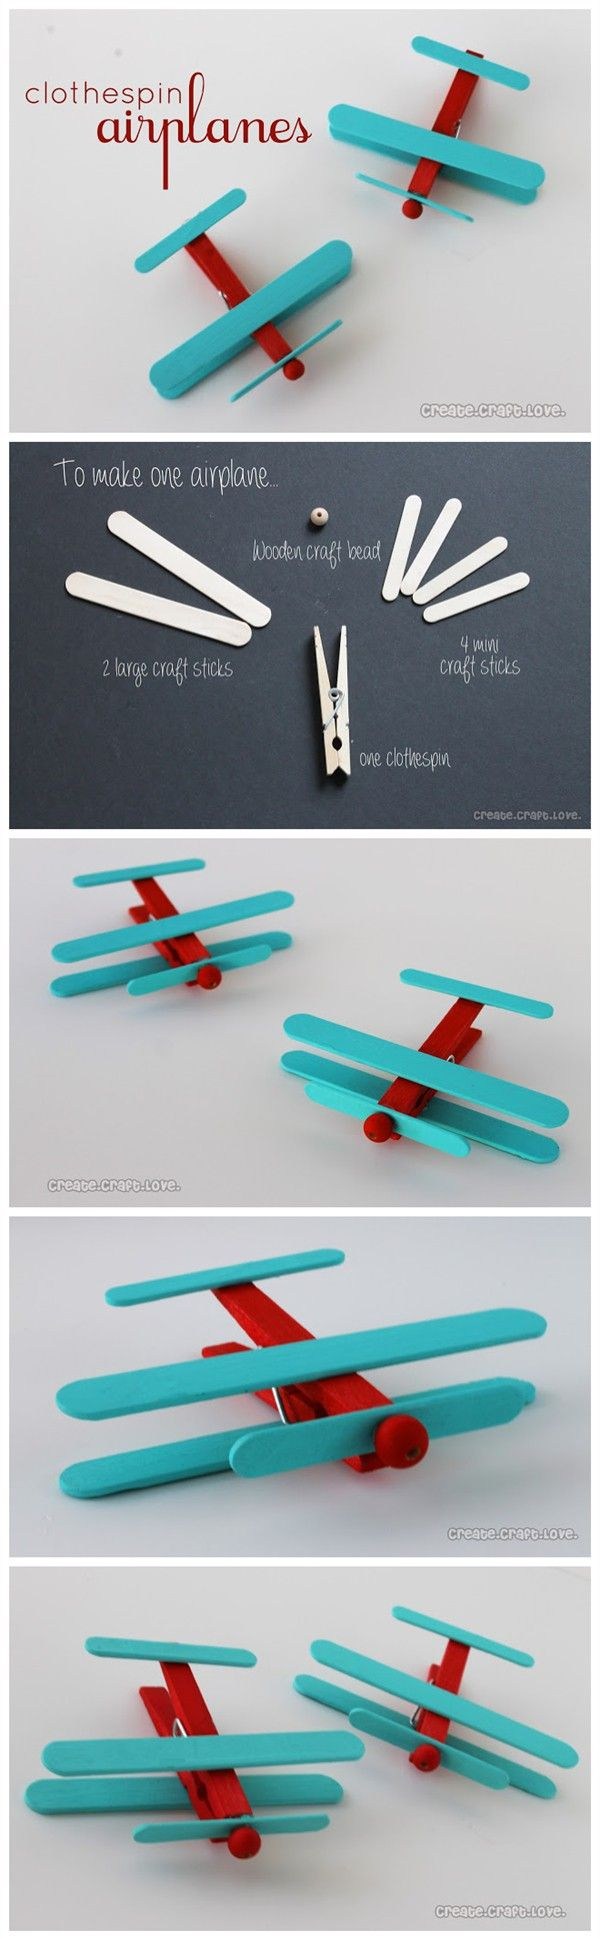 Create craft love - vliegtuigje van knijper en ijsstokje knutselen. Airplanes from clothespins and popsicle sticks